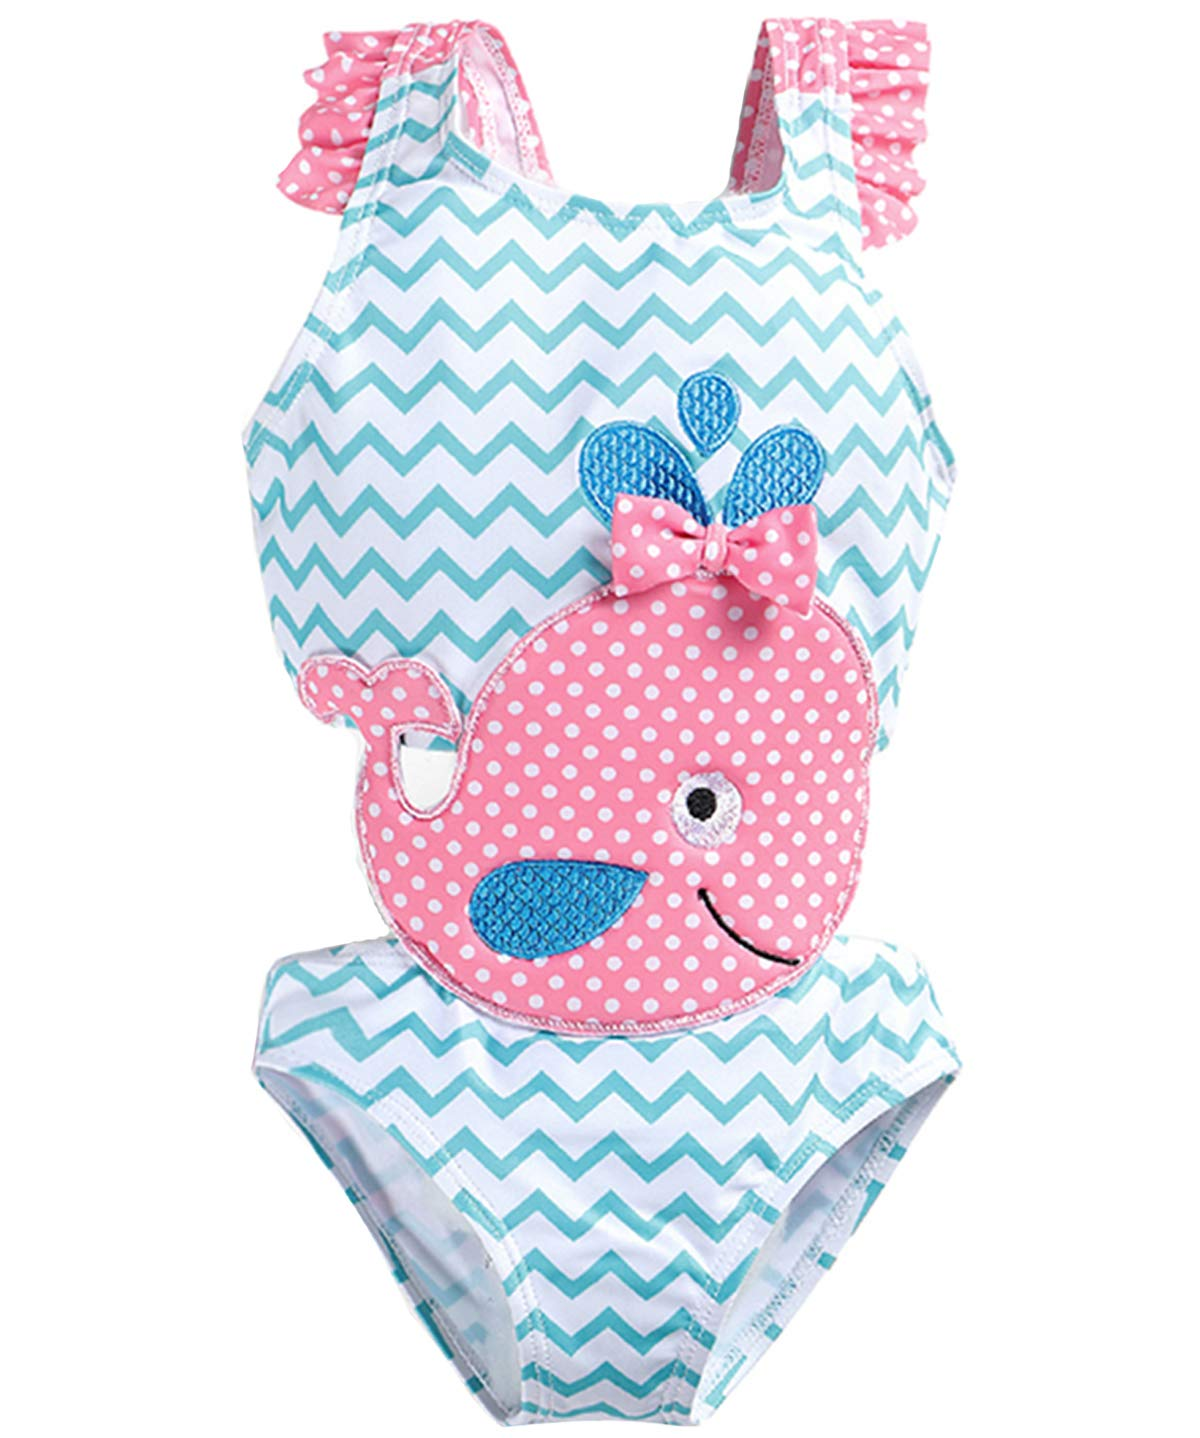 Coralup Baby Girls One-Piece Swimsuit Cute Swimwear Flamingo Mermaid Bathing Suit Outfits